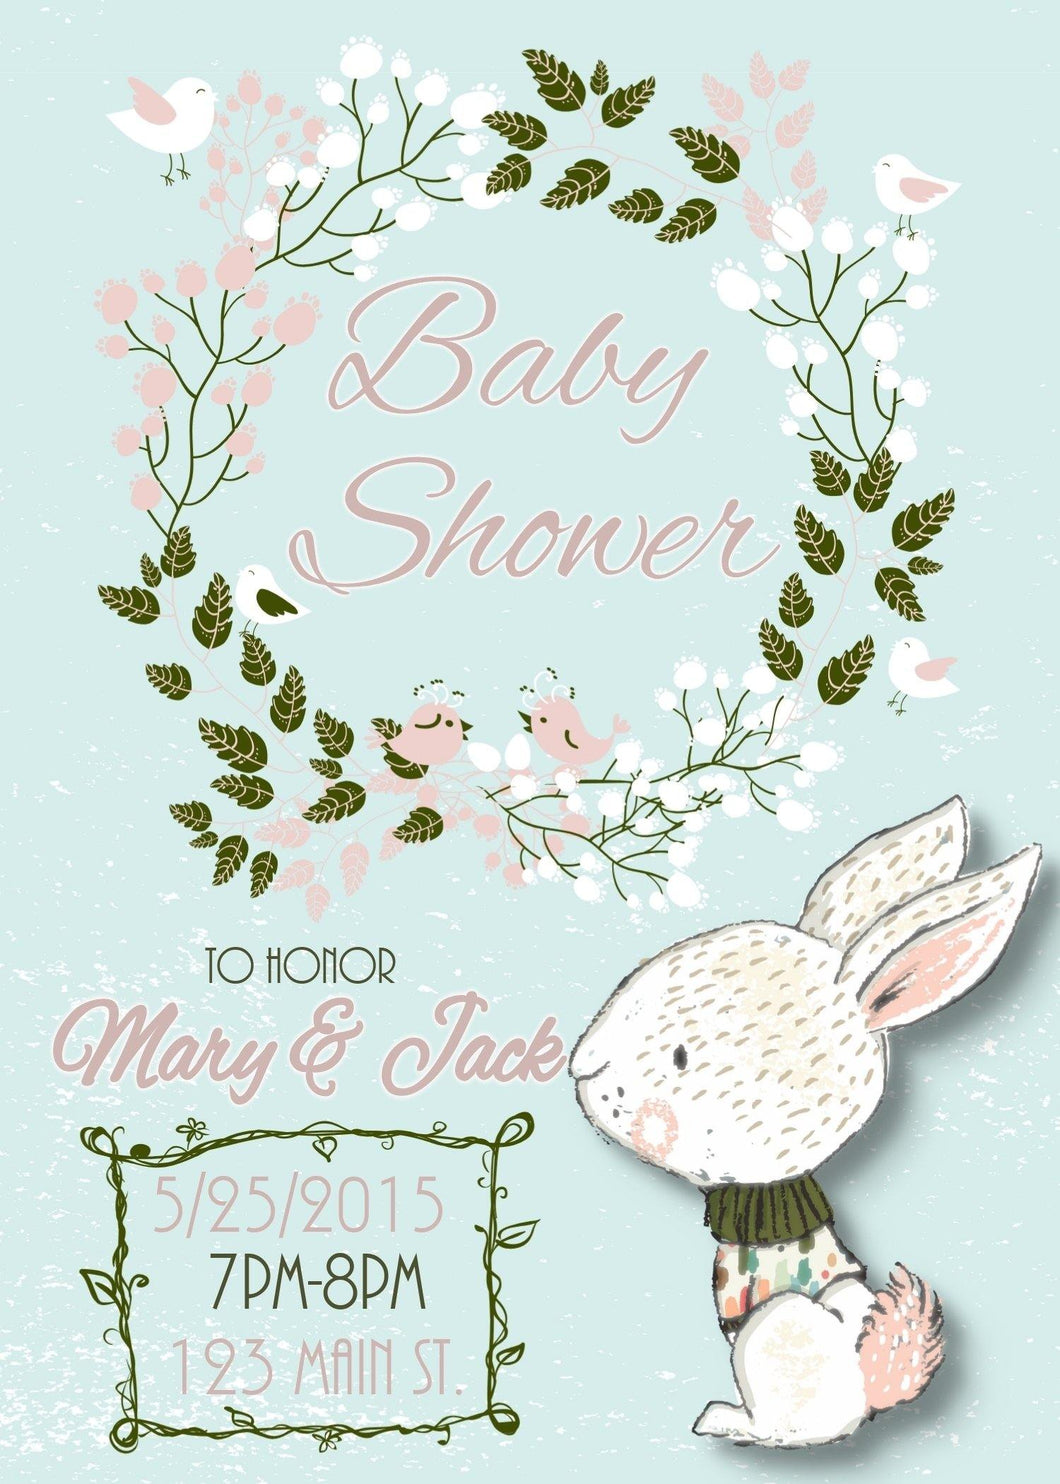 Floral Wreath Bunny Baby Shower Invite - Custom Design Party Invites and Personalized Announcements